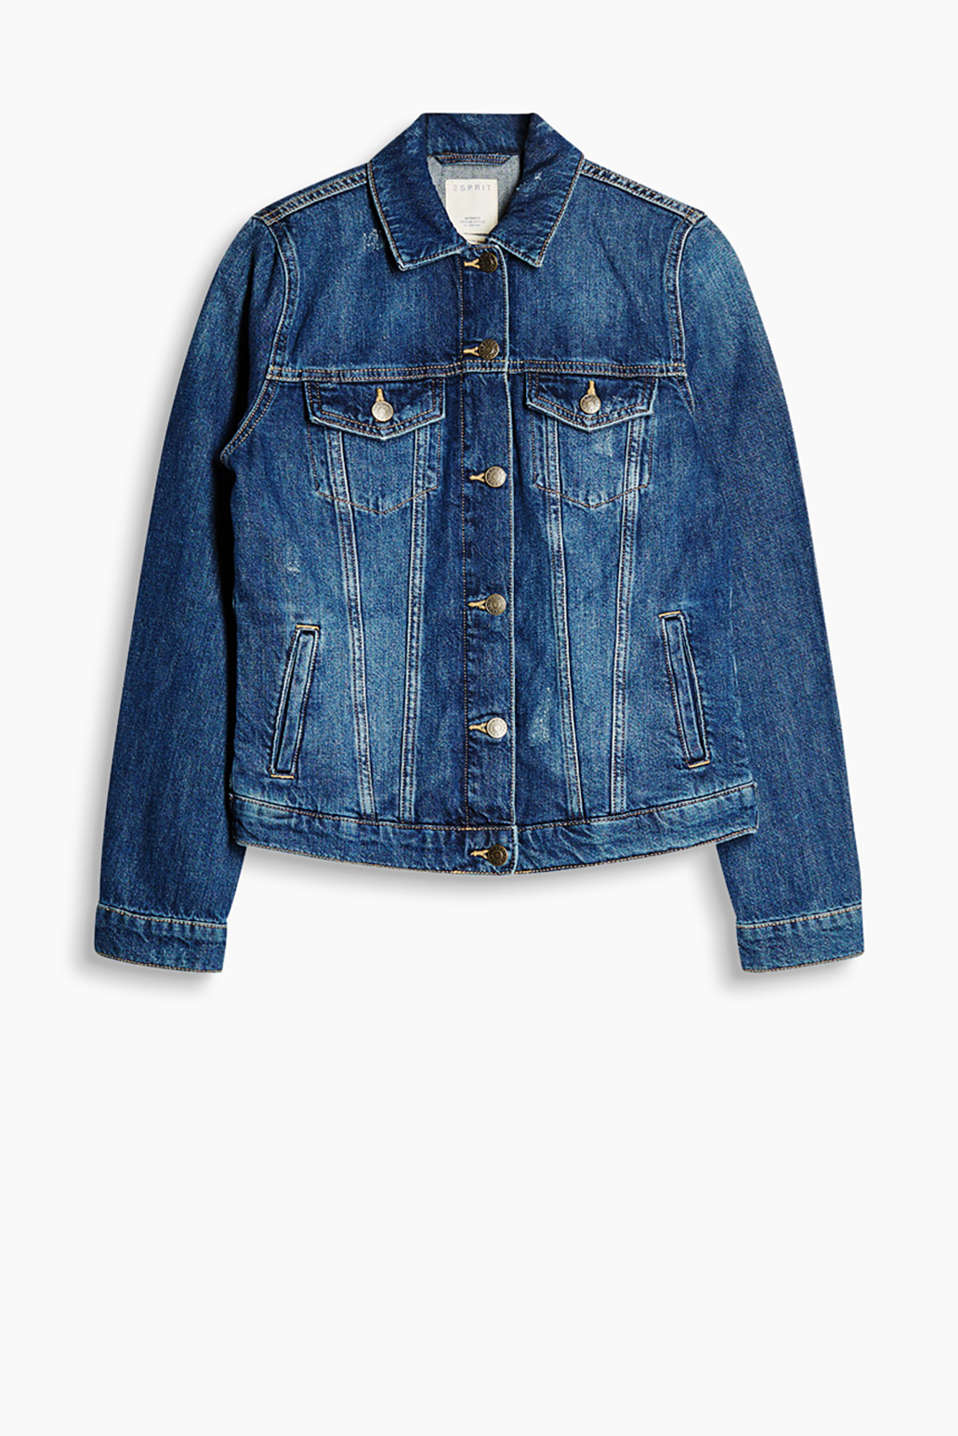 Fitted denim jacket with vintage effects, made of 100% cotton